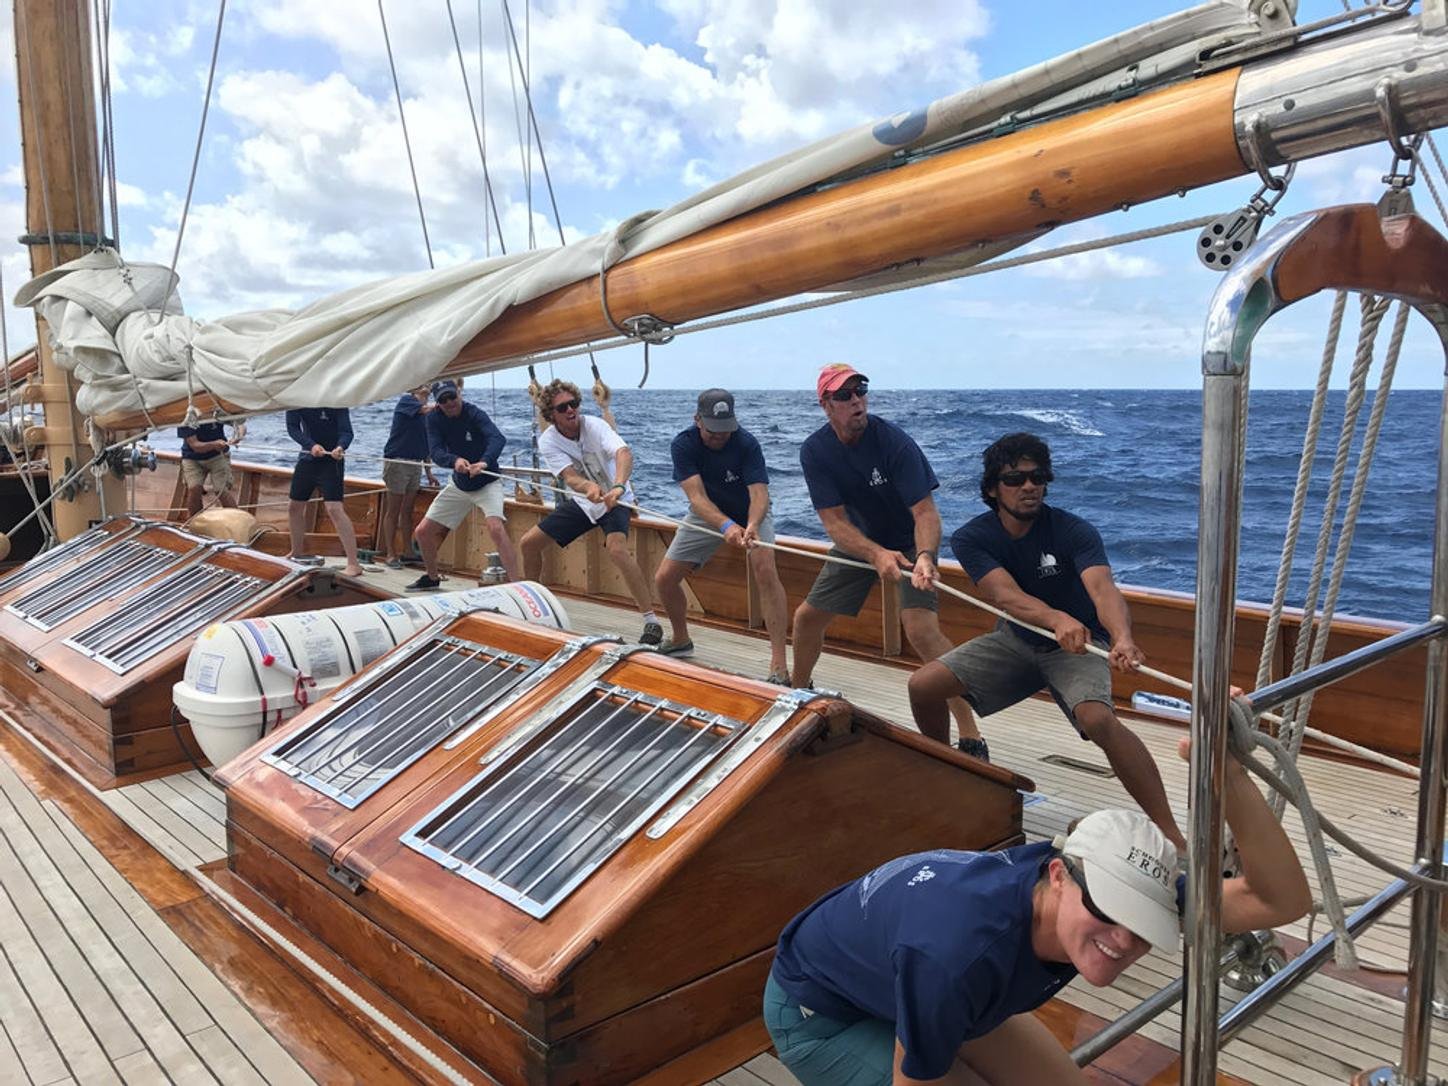 sailors group together during a regatta charter on board sailing yacht EROS